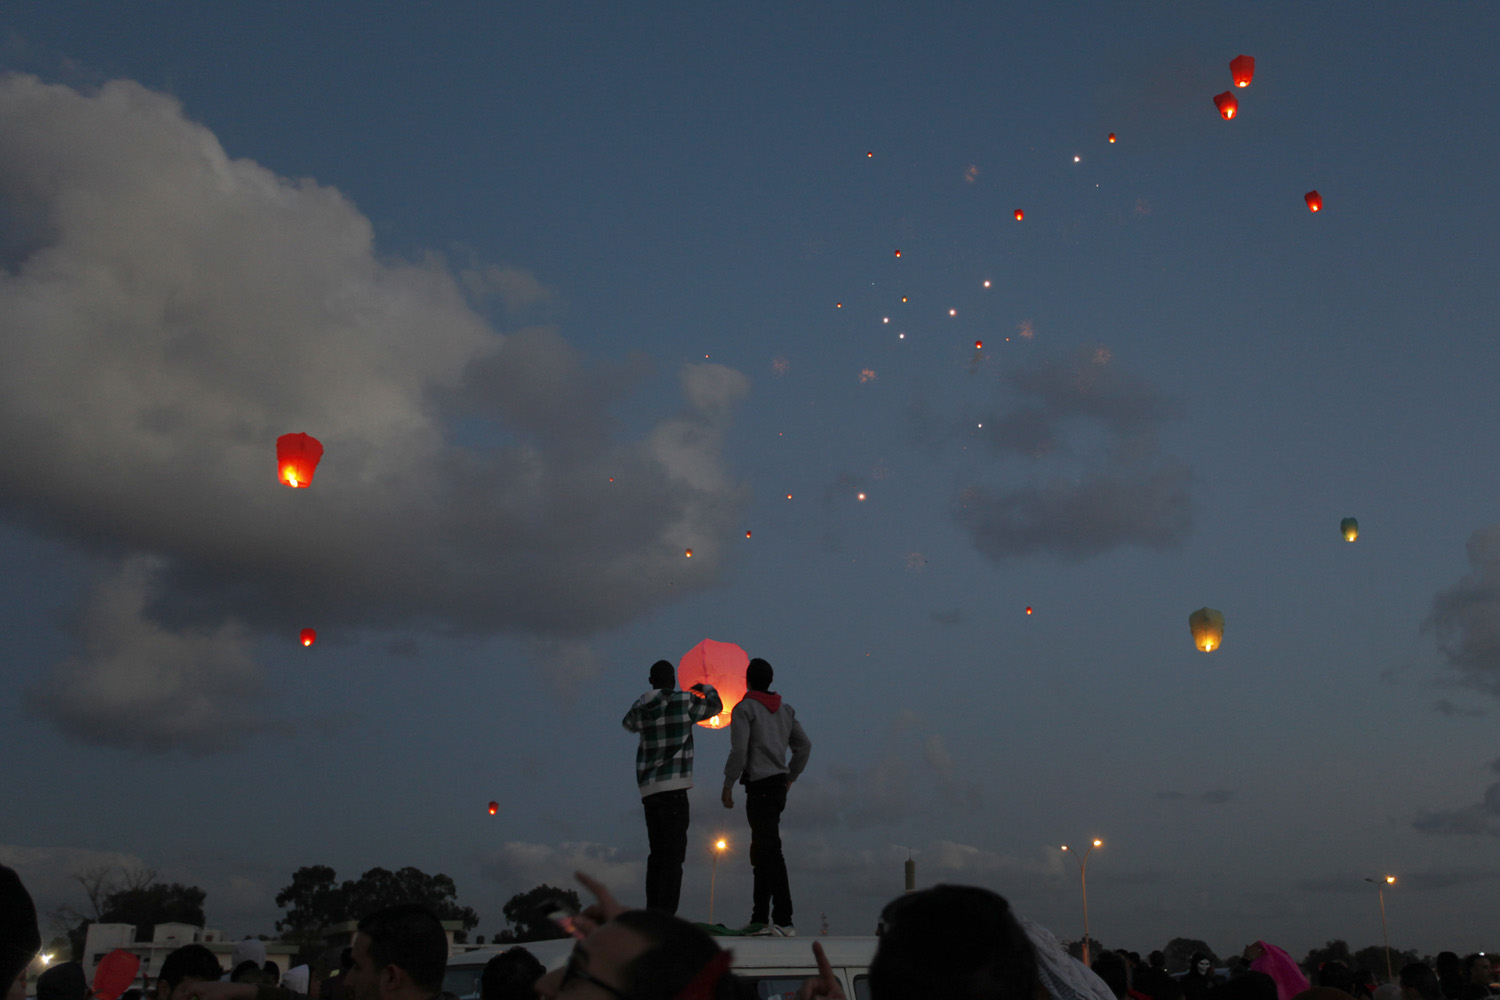 Feb. 17, 2013. Libyans release lanterns into the air at Nasr Square during the second anniversary of the uprising that toppled longtime dictator Moammar Gadhafi in Benghazi, Libya.